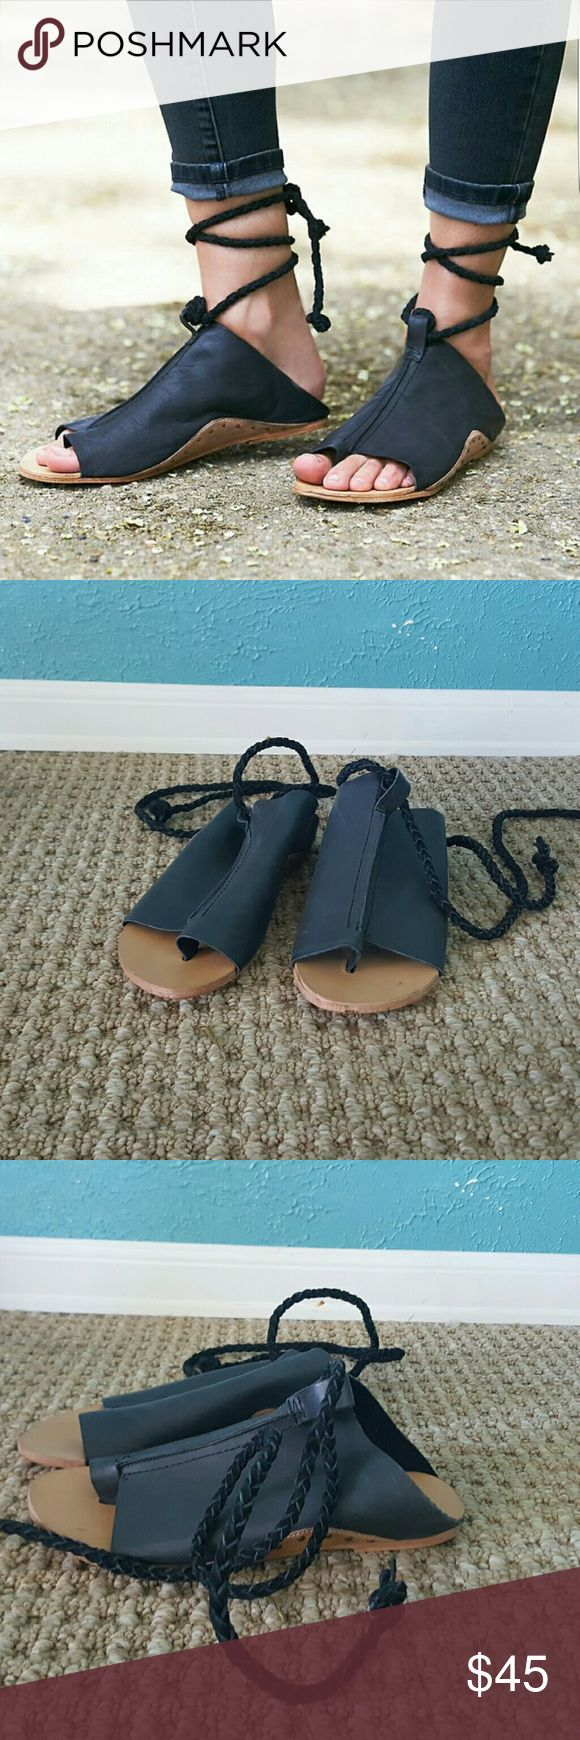 Free People Cherry Valley Sandals Brand New in Box Brand new, unworn Free People Cherry Valley sandals. Super cute ankle wrap. Size 37 and probably run a bit small compared to a normal FP 37. Free People Shoes Sandals